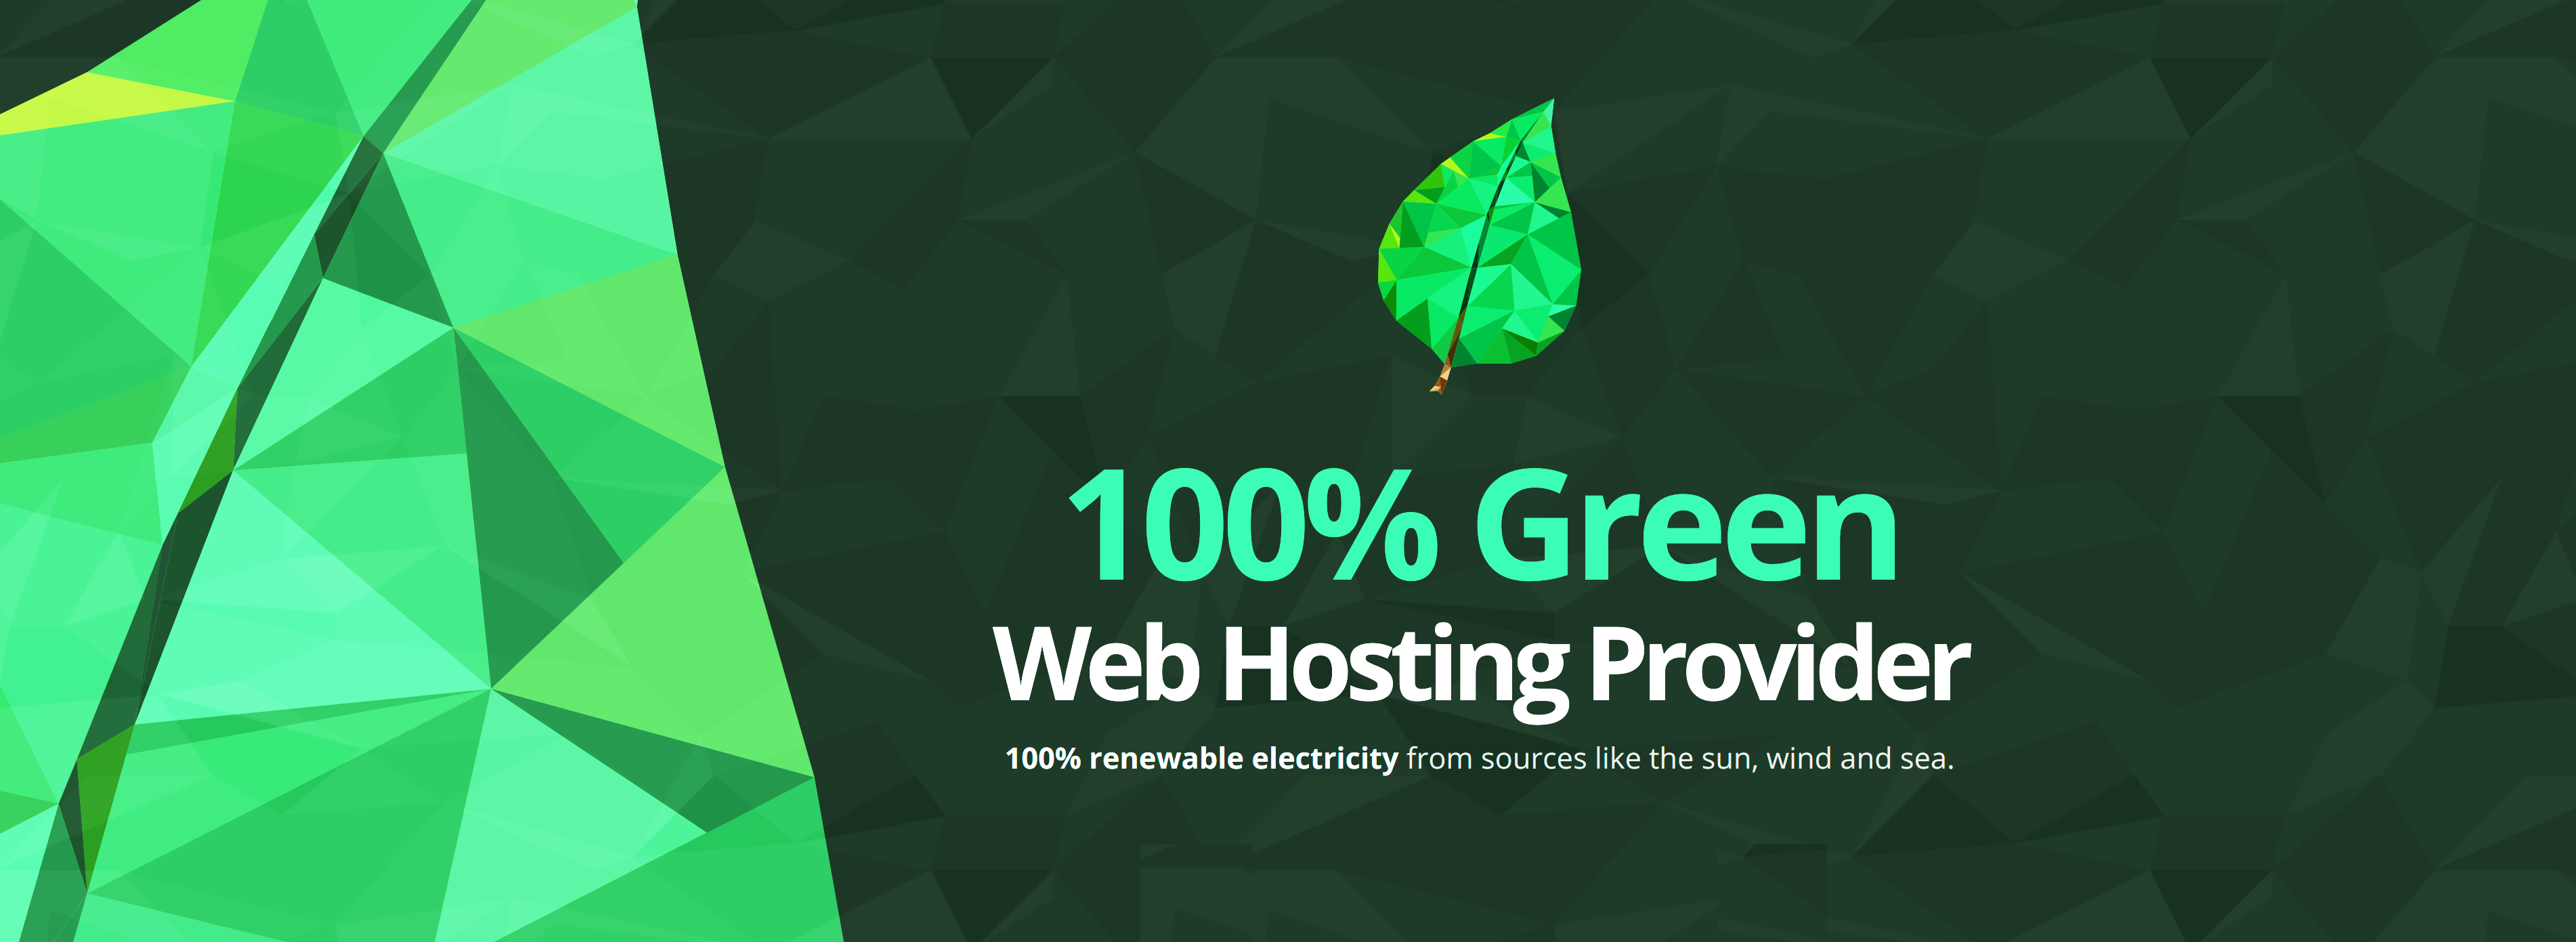 Green energy business hosting